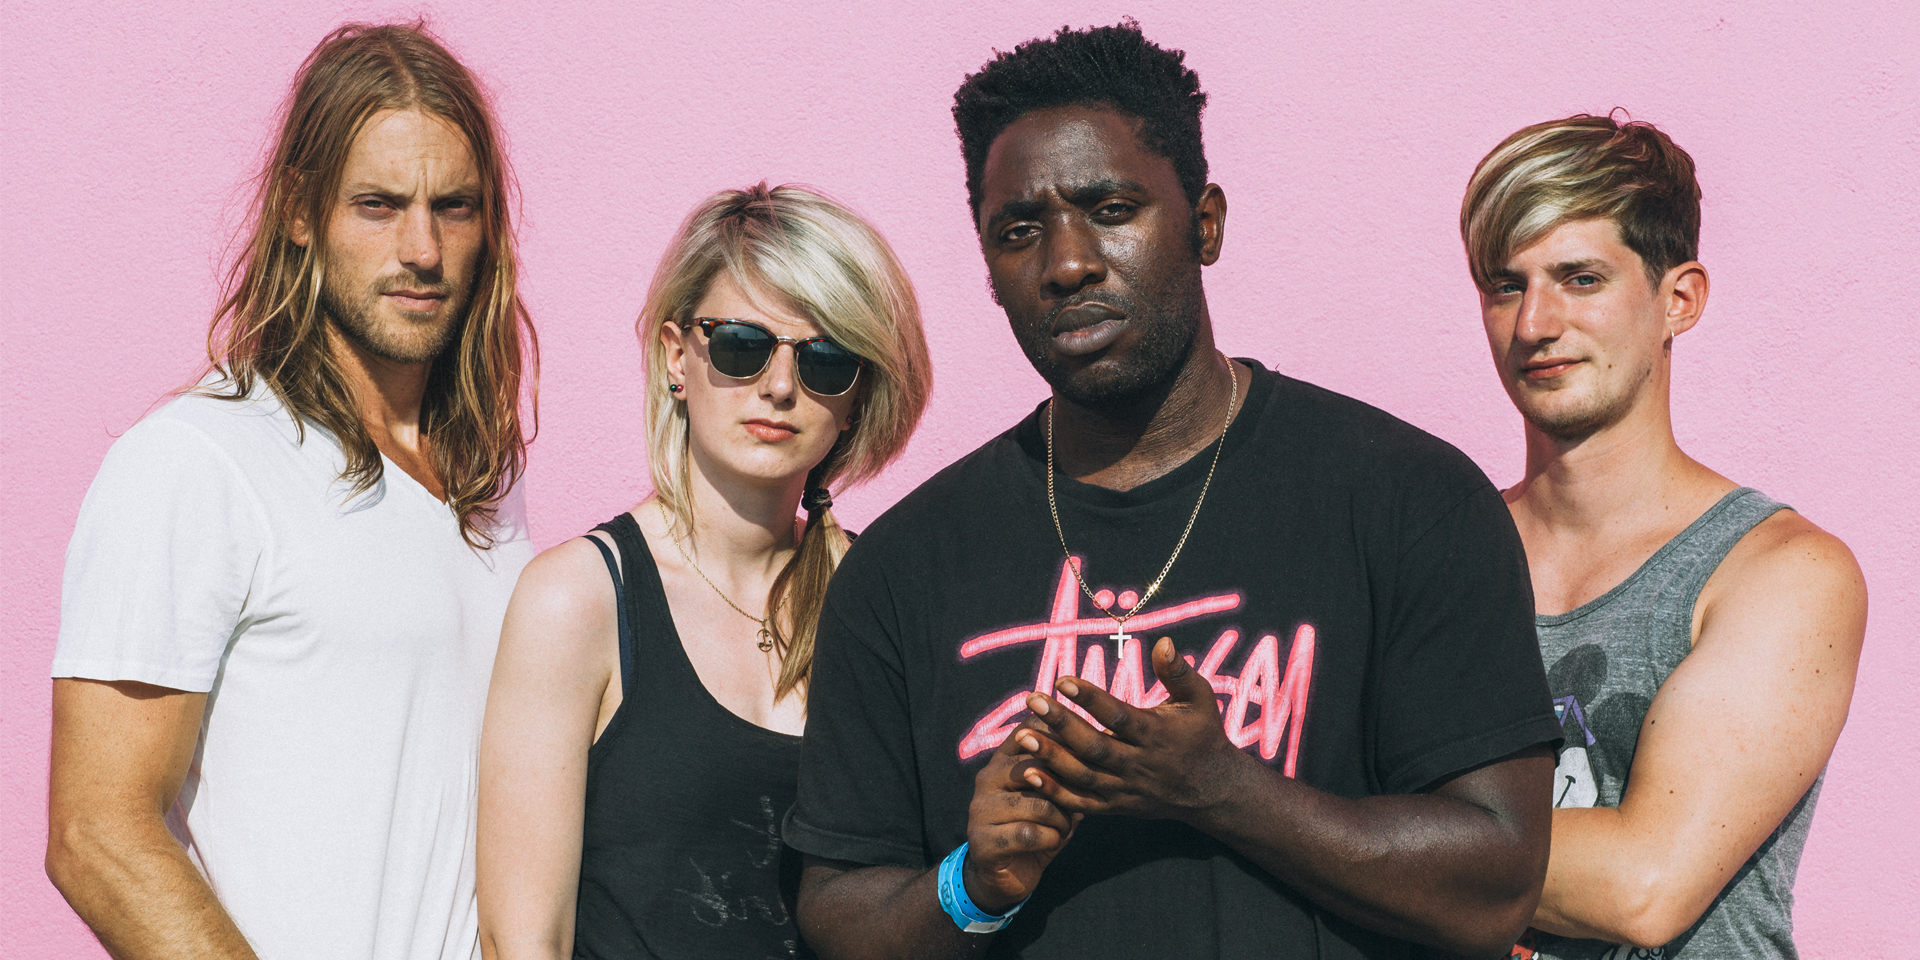 Bloc Party to perform 'Silent Alarm' in full on Aussie headline tour